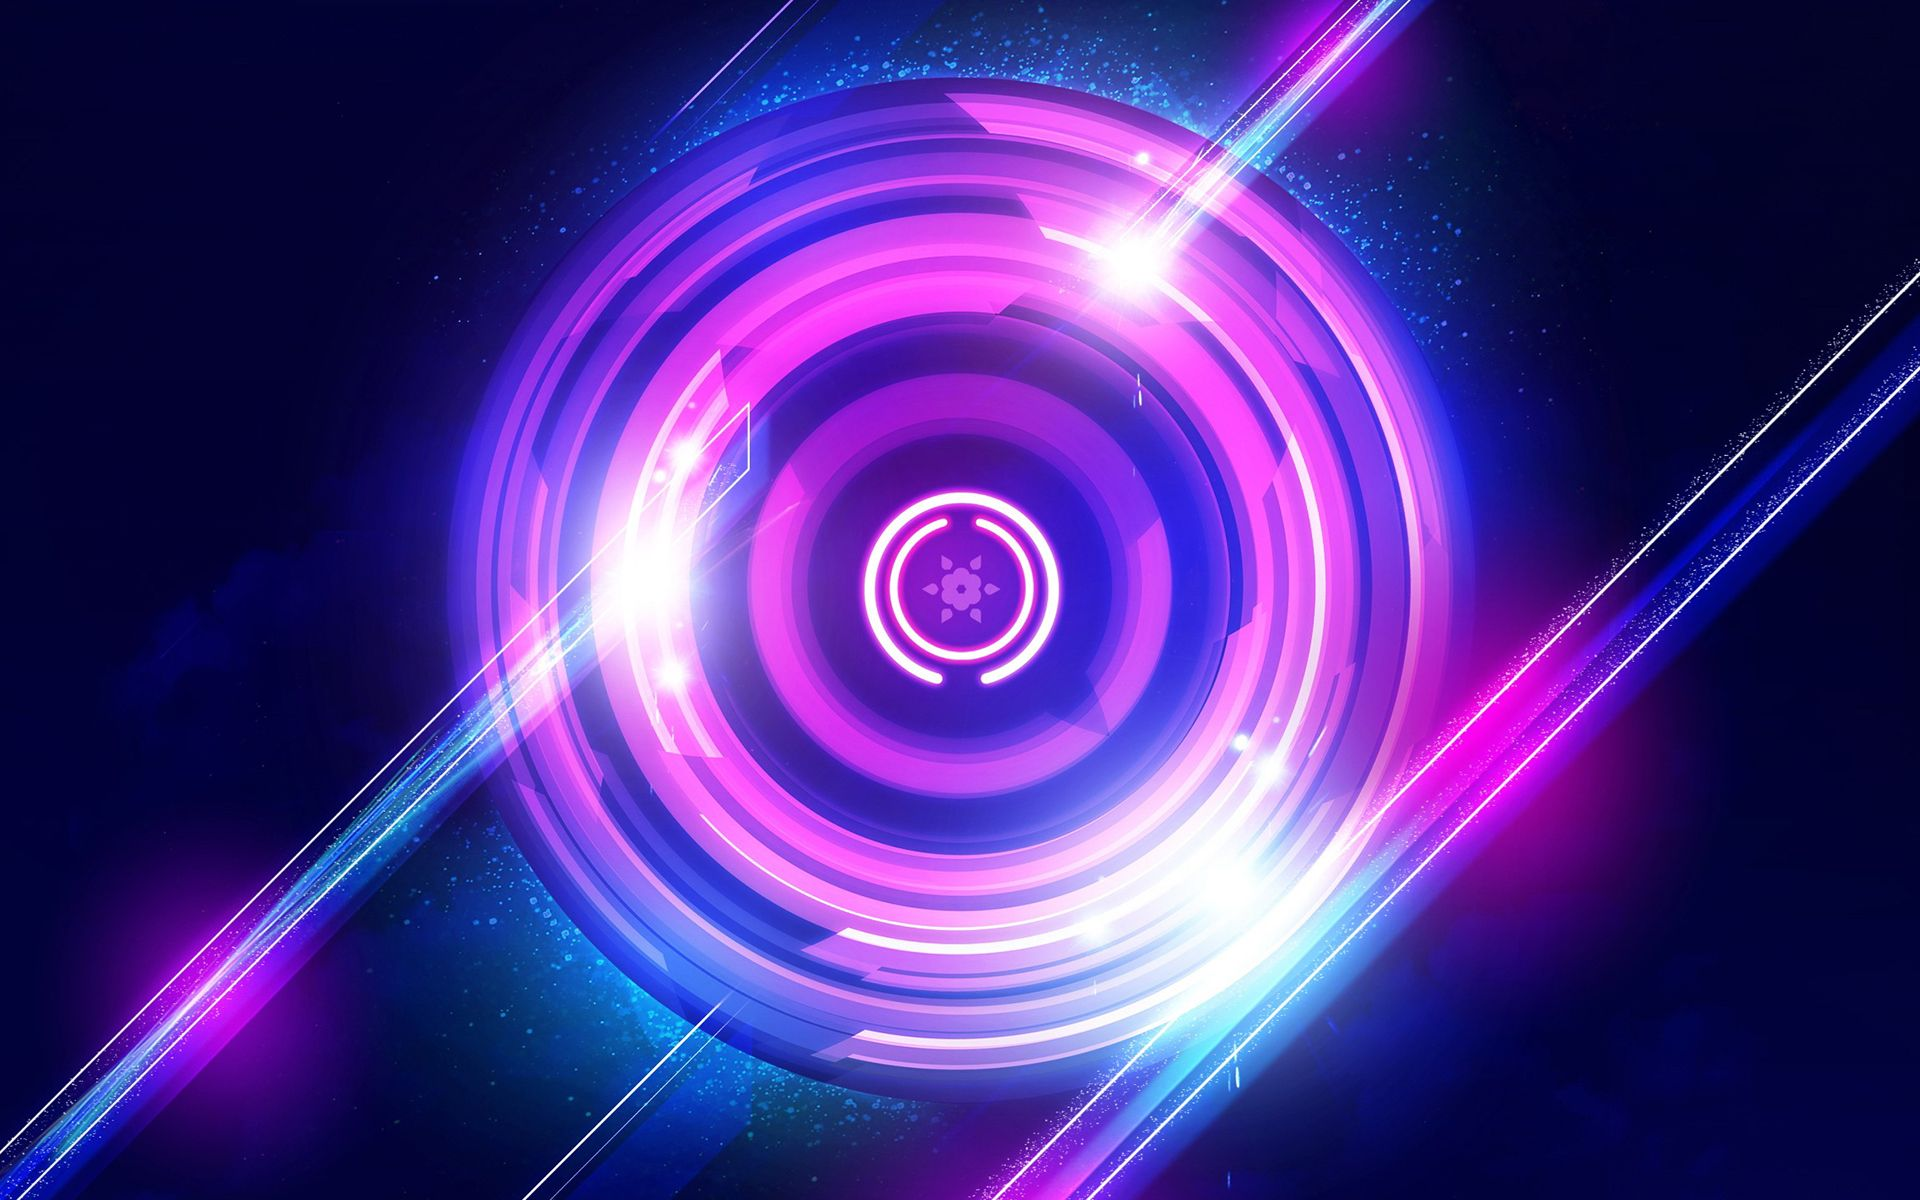 Light Circles Abstract Wallpapers #6993917